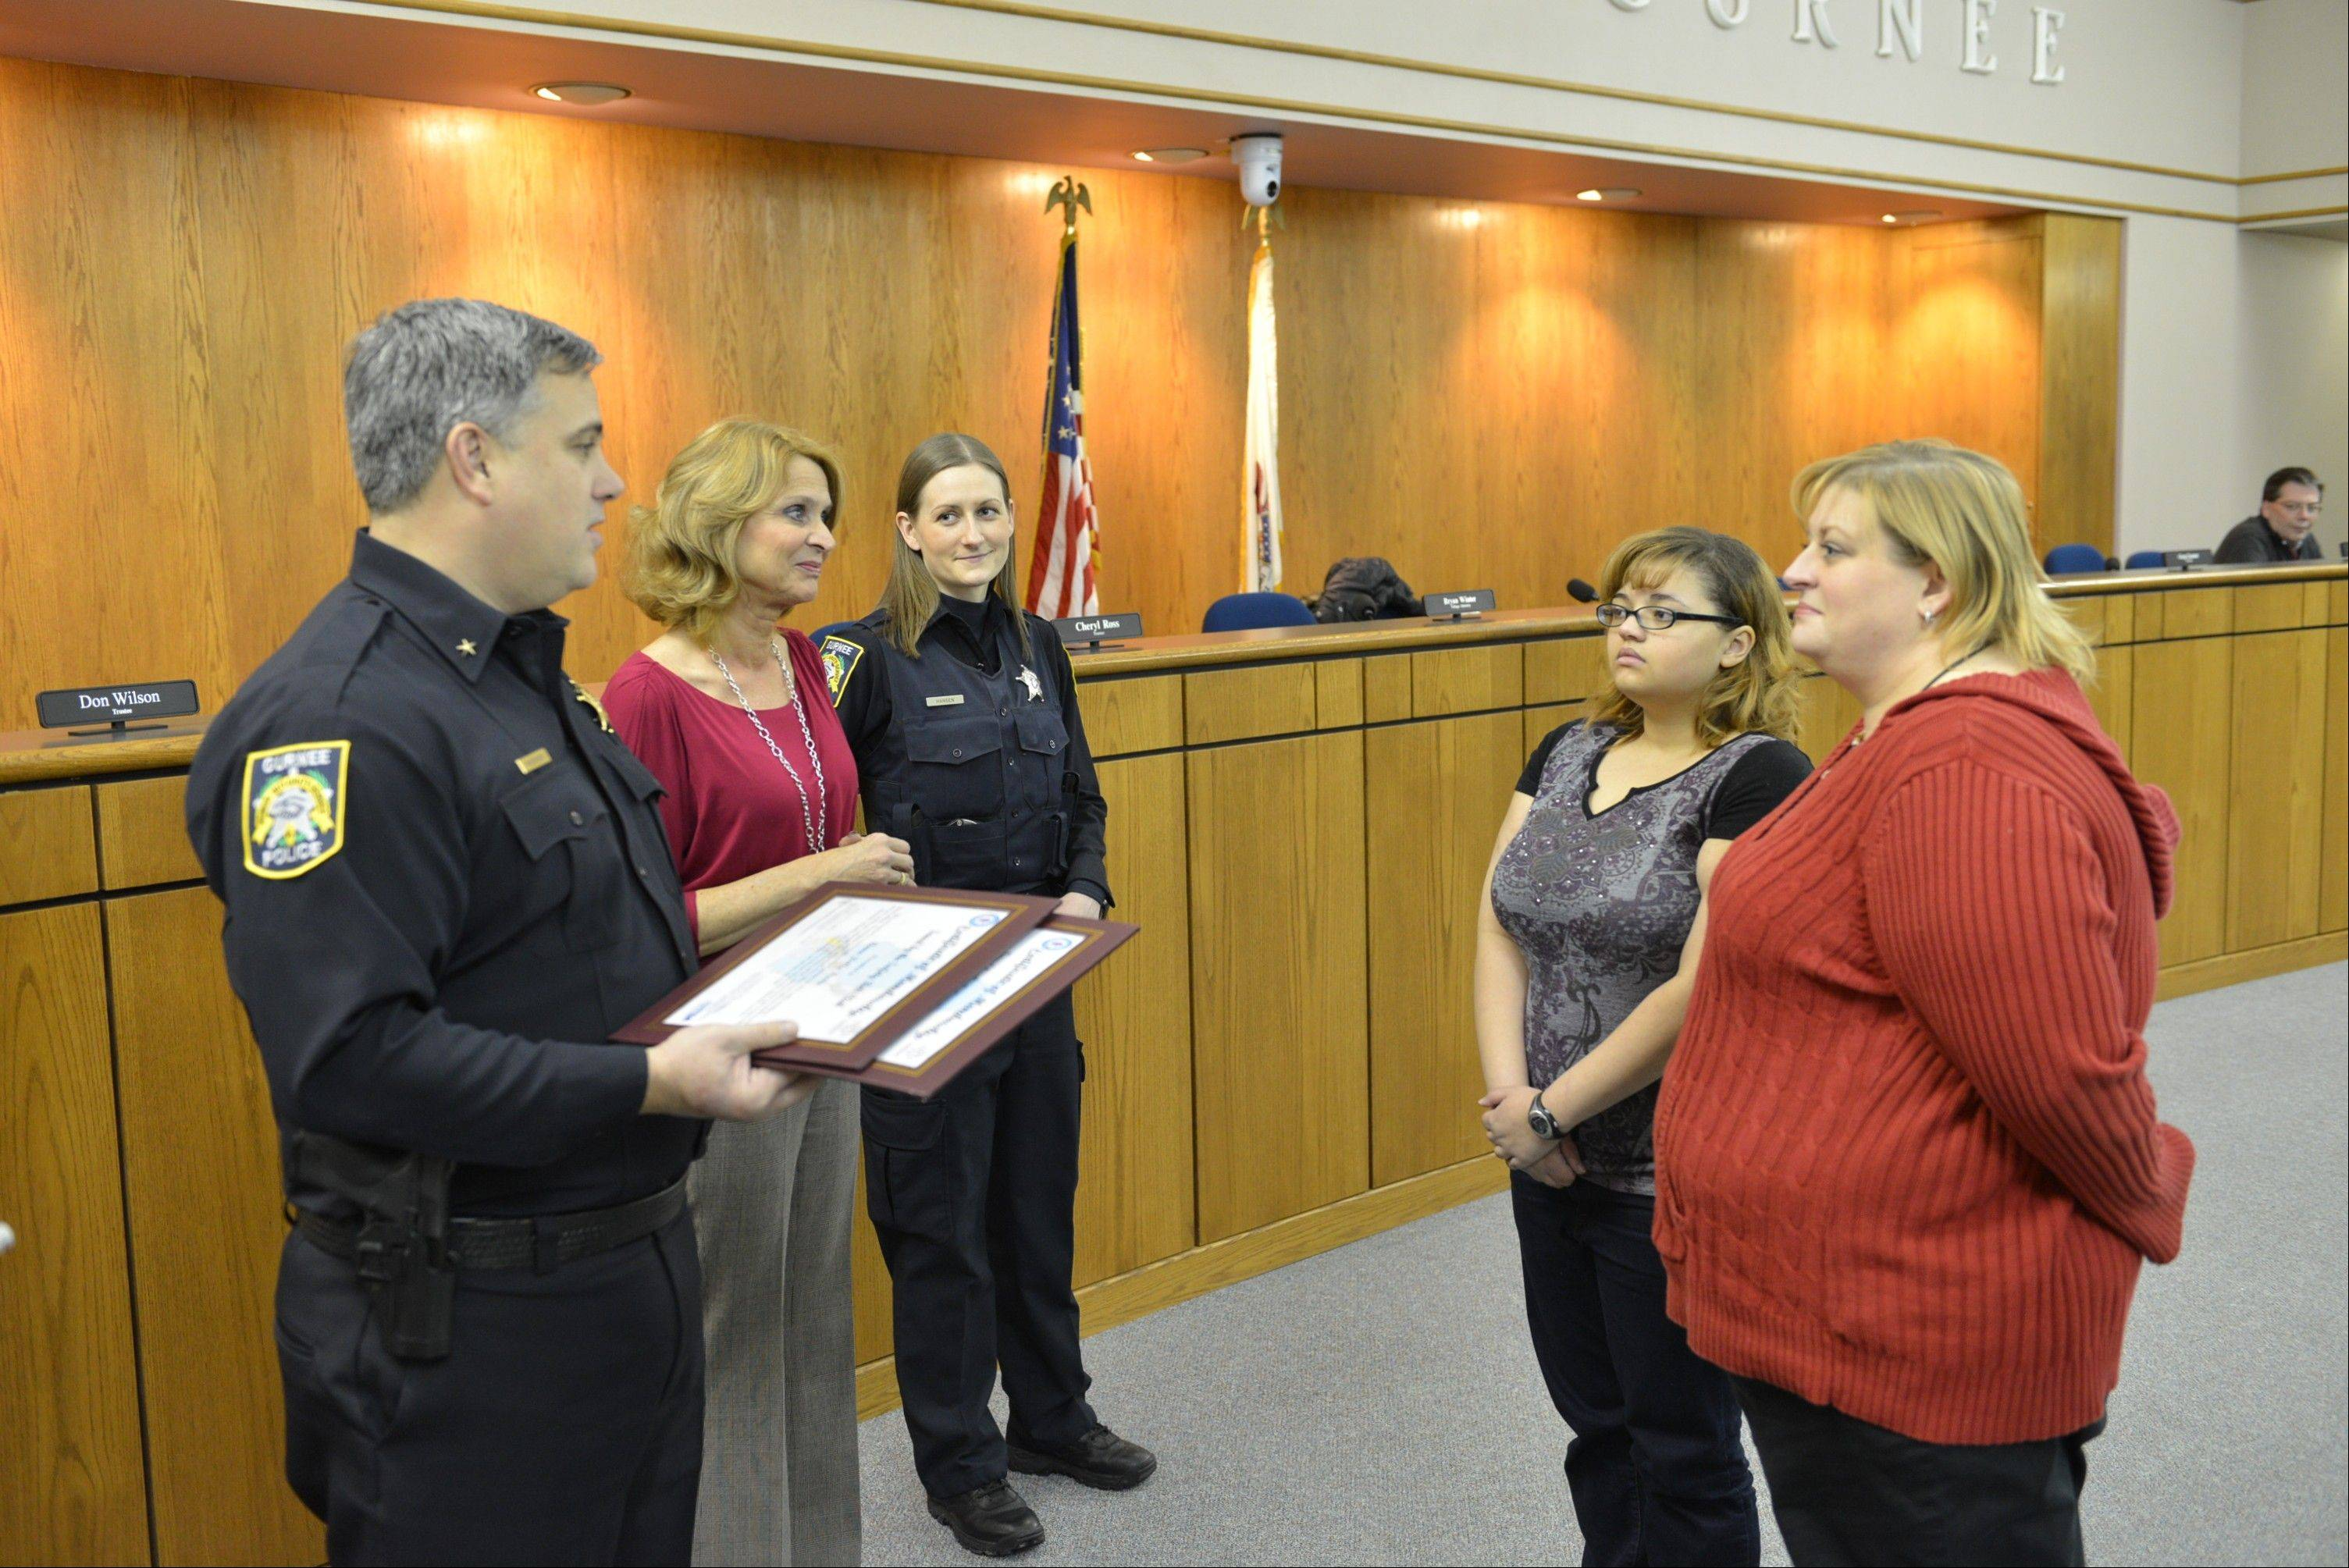 Gurnee Police Chief Kevin Woodside, left, and Mayor Kristina Kovarik were accompanied by officer Kelly Hansen at the village hall when they presented Saved by the Safety Belt honors to Anna Della Posta, far right, and her daughter, Jasmine Washington.